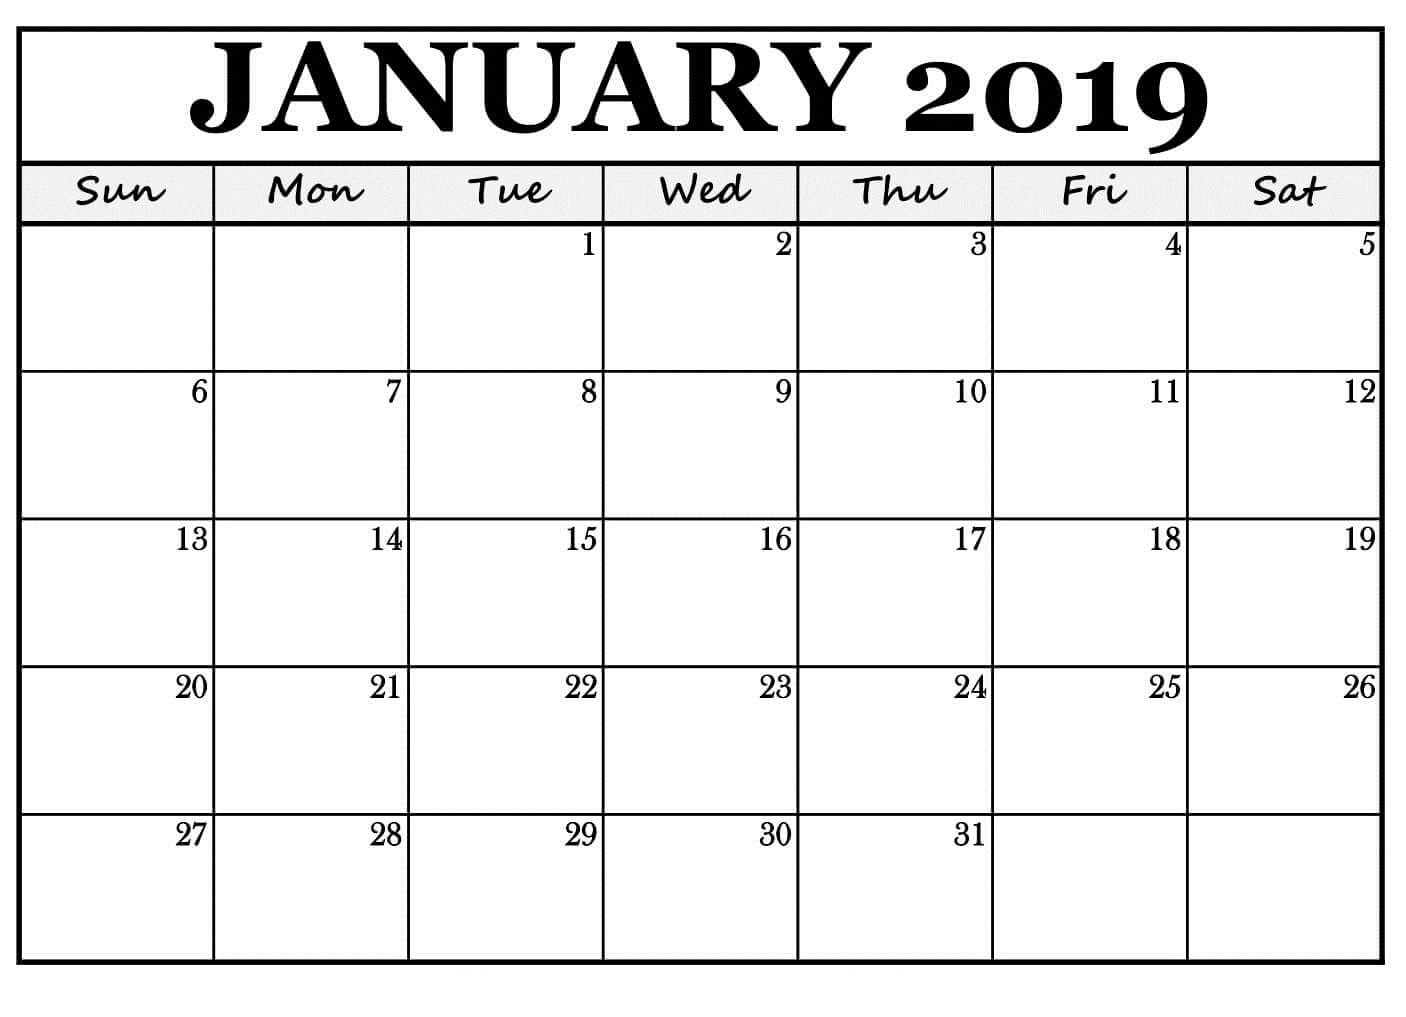 2019 January Calendar January 2019 Calendar Reminders Free Template | January 2019